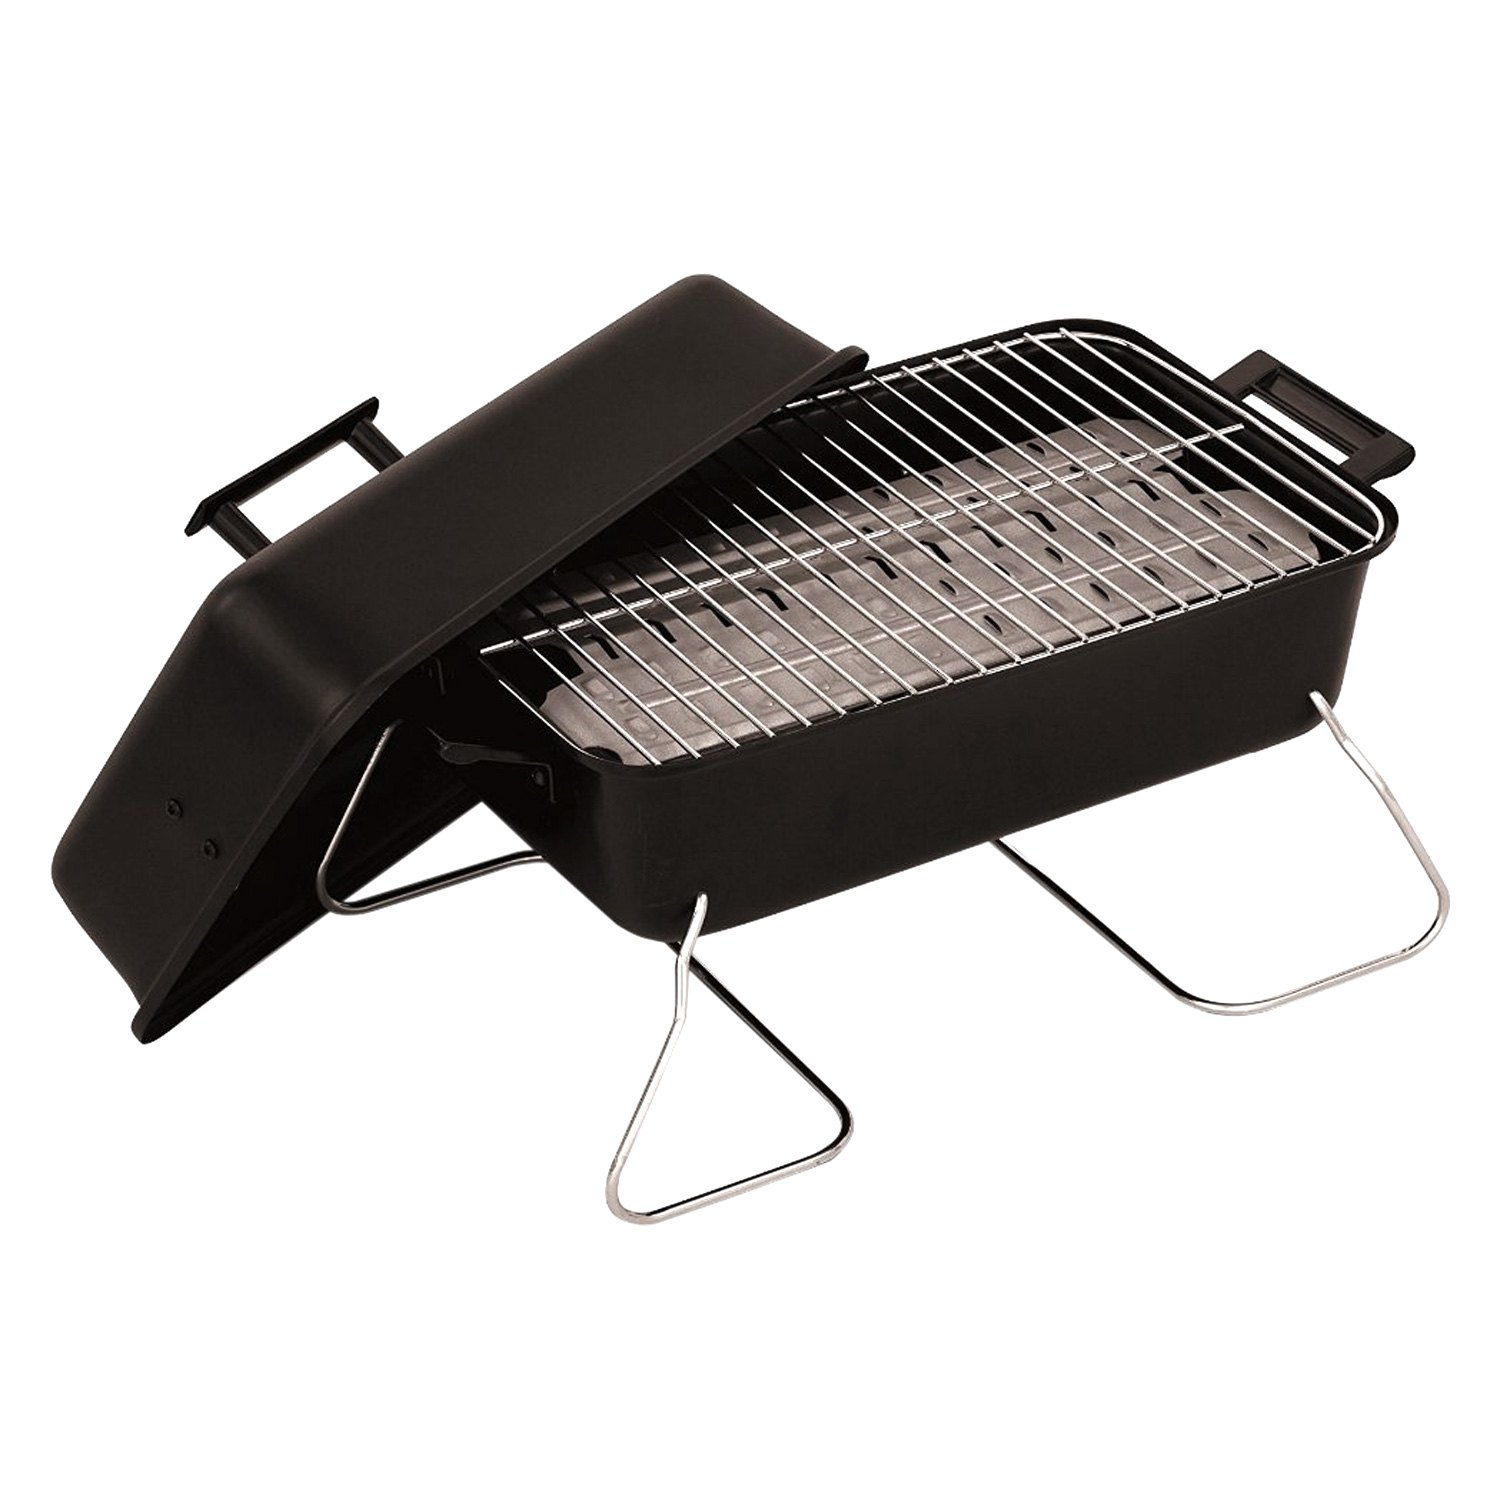 char broil charcoal grill instructions